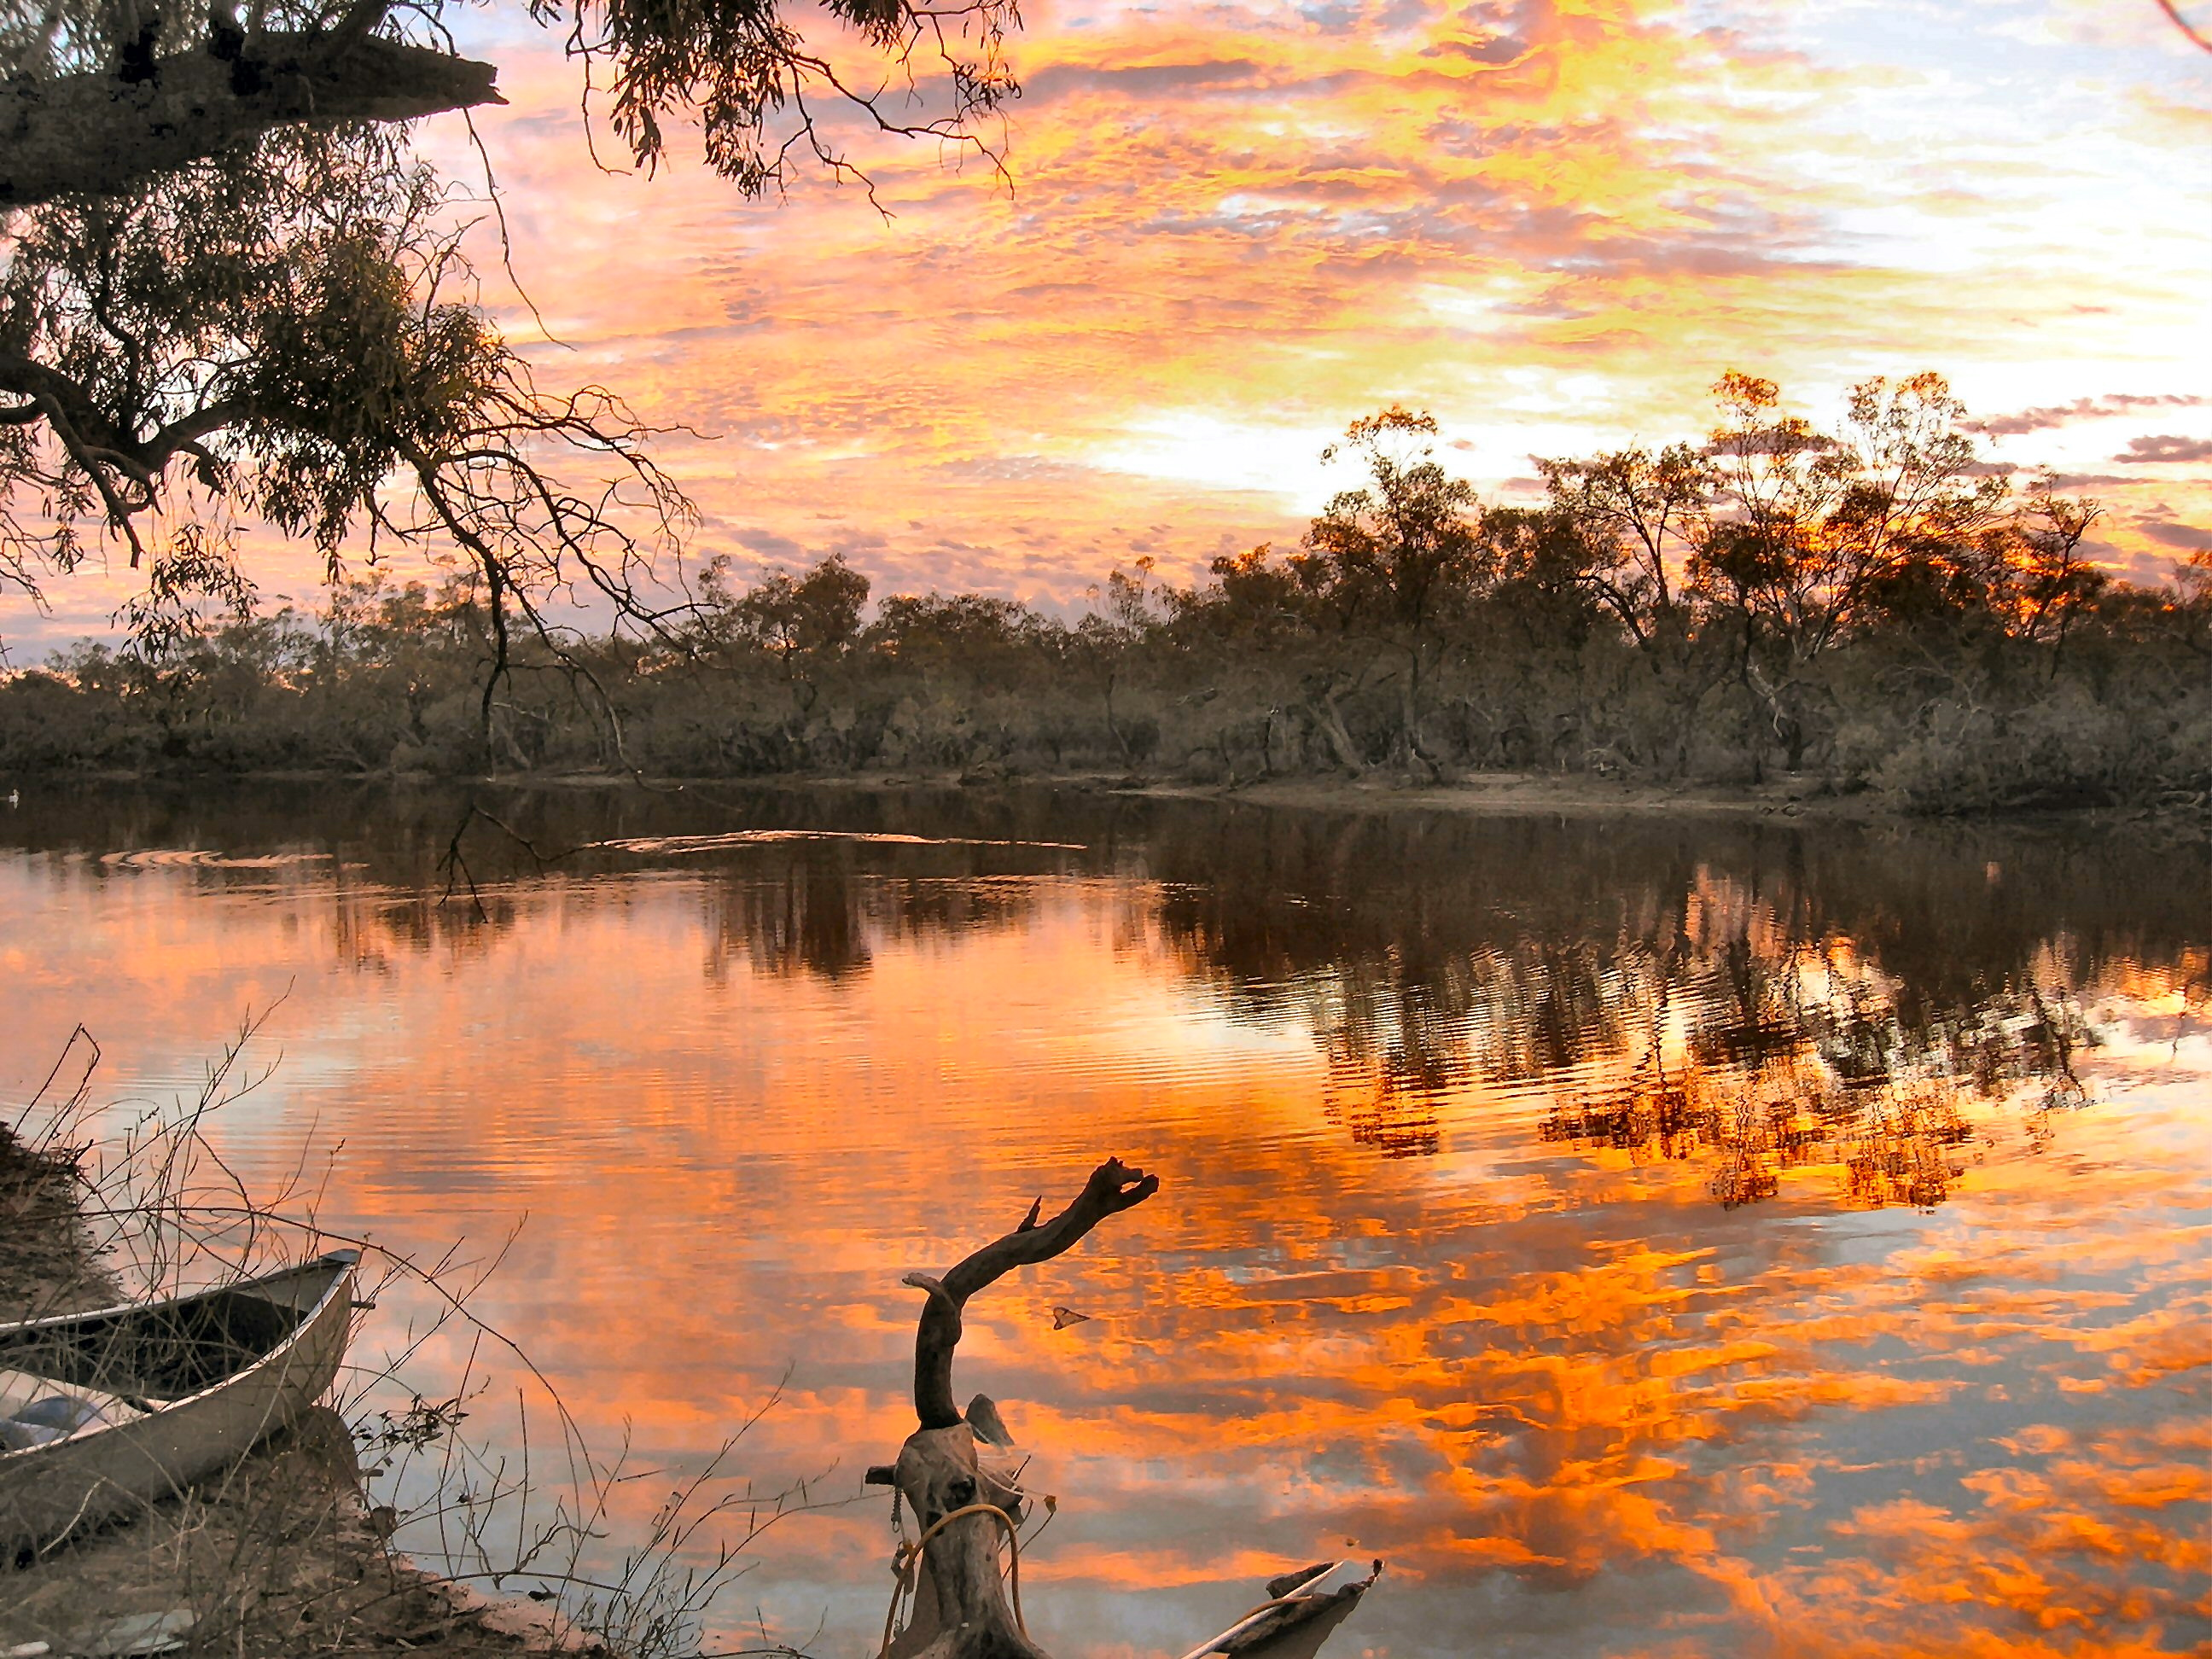 Ourimperee Water Hole - Outback Australia